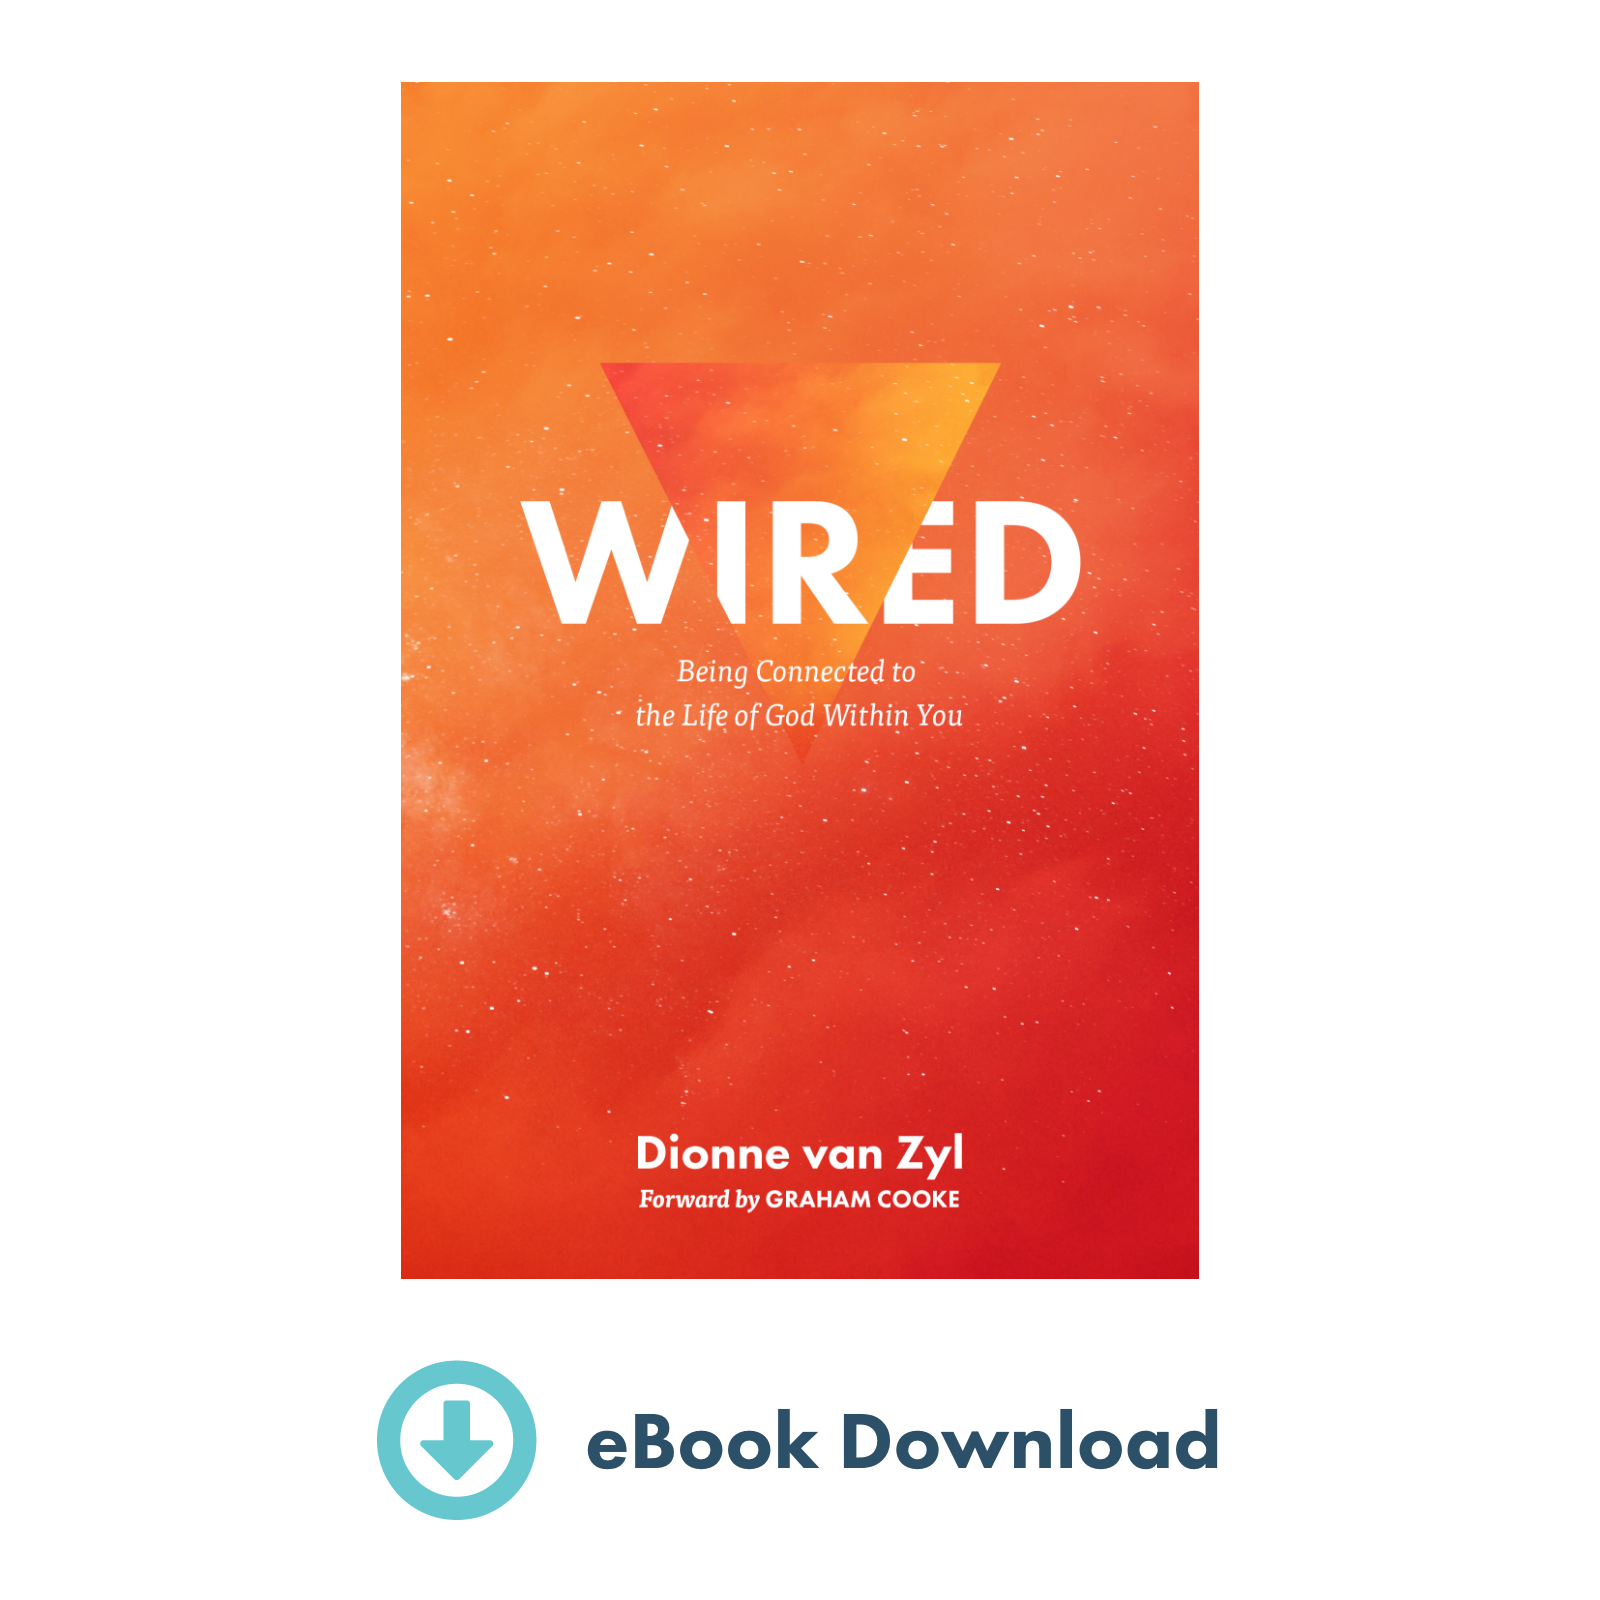 Wired - eBook Download — Wired Living